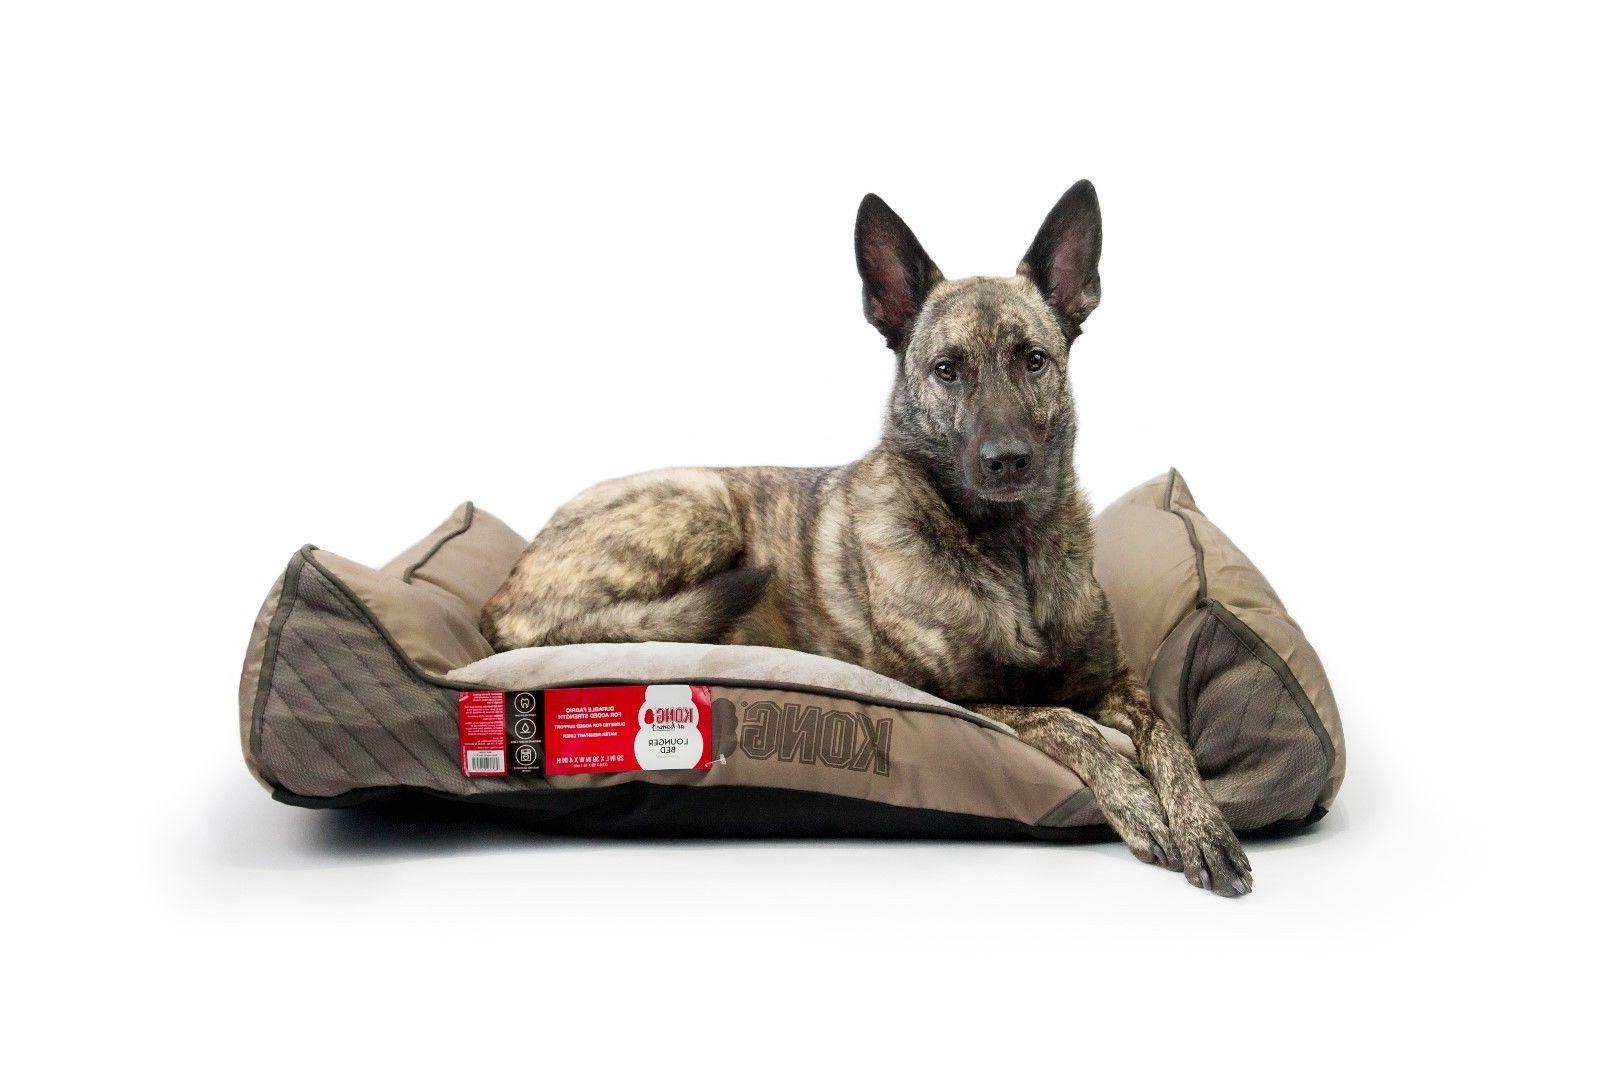 Kong Dog Bed - Khaki - Chew Resistant - Machine Washable Cov